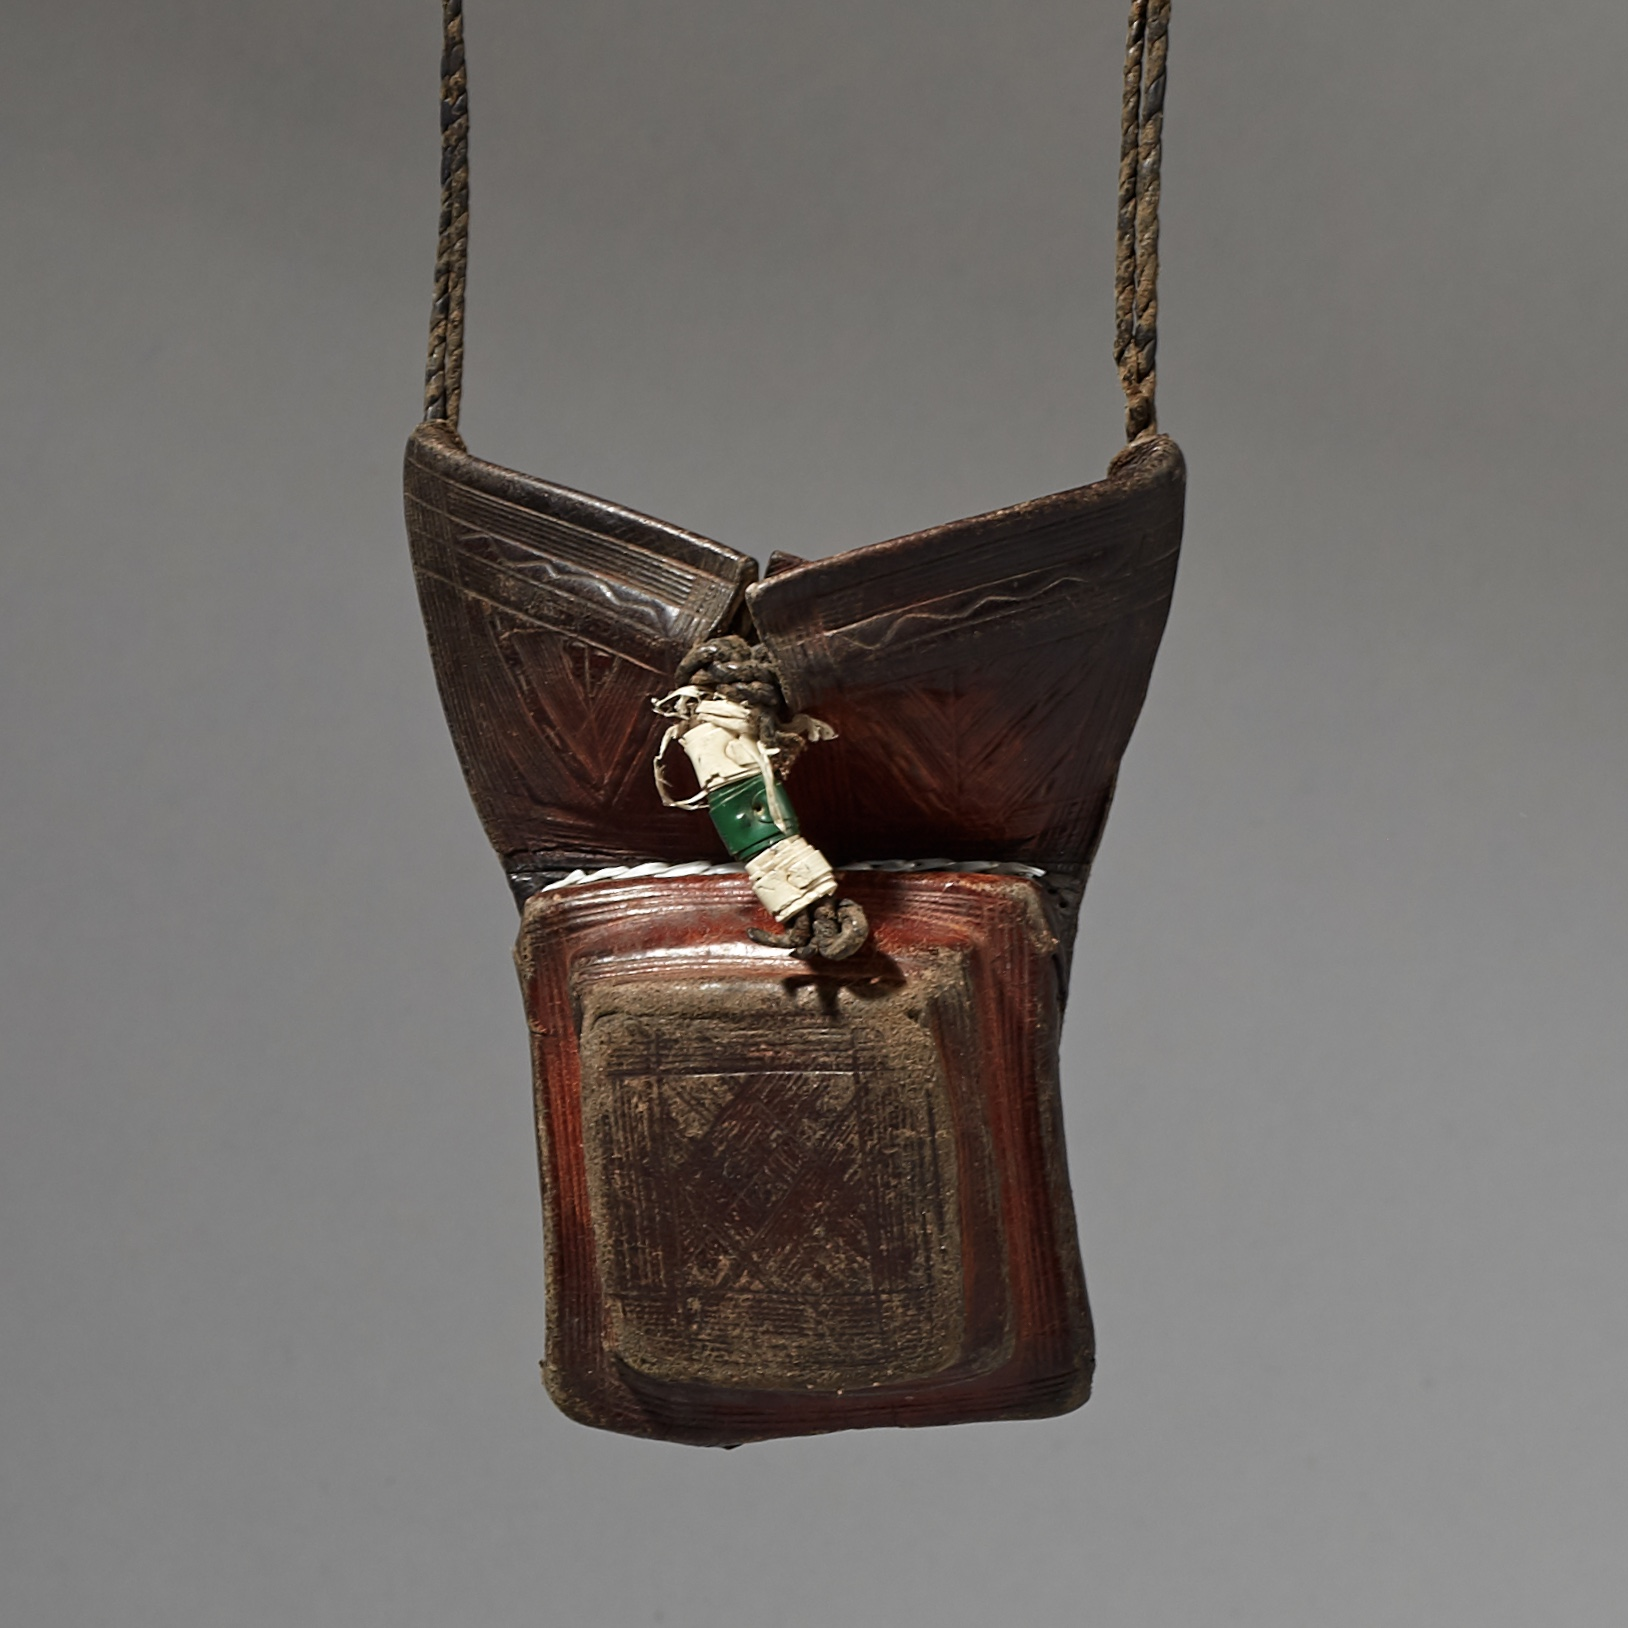 ( Sold timtim ) -A GRIS GRIS LEATHER TALISMAN PENDANT FROM THE NOMADS OF THE SAHARA ( No 3042 )